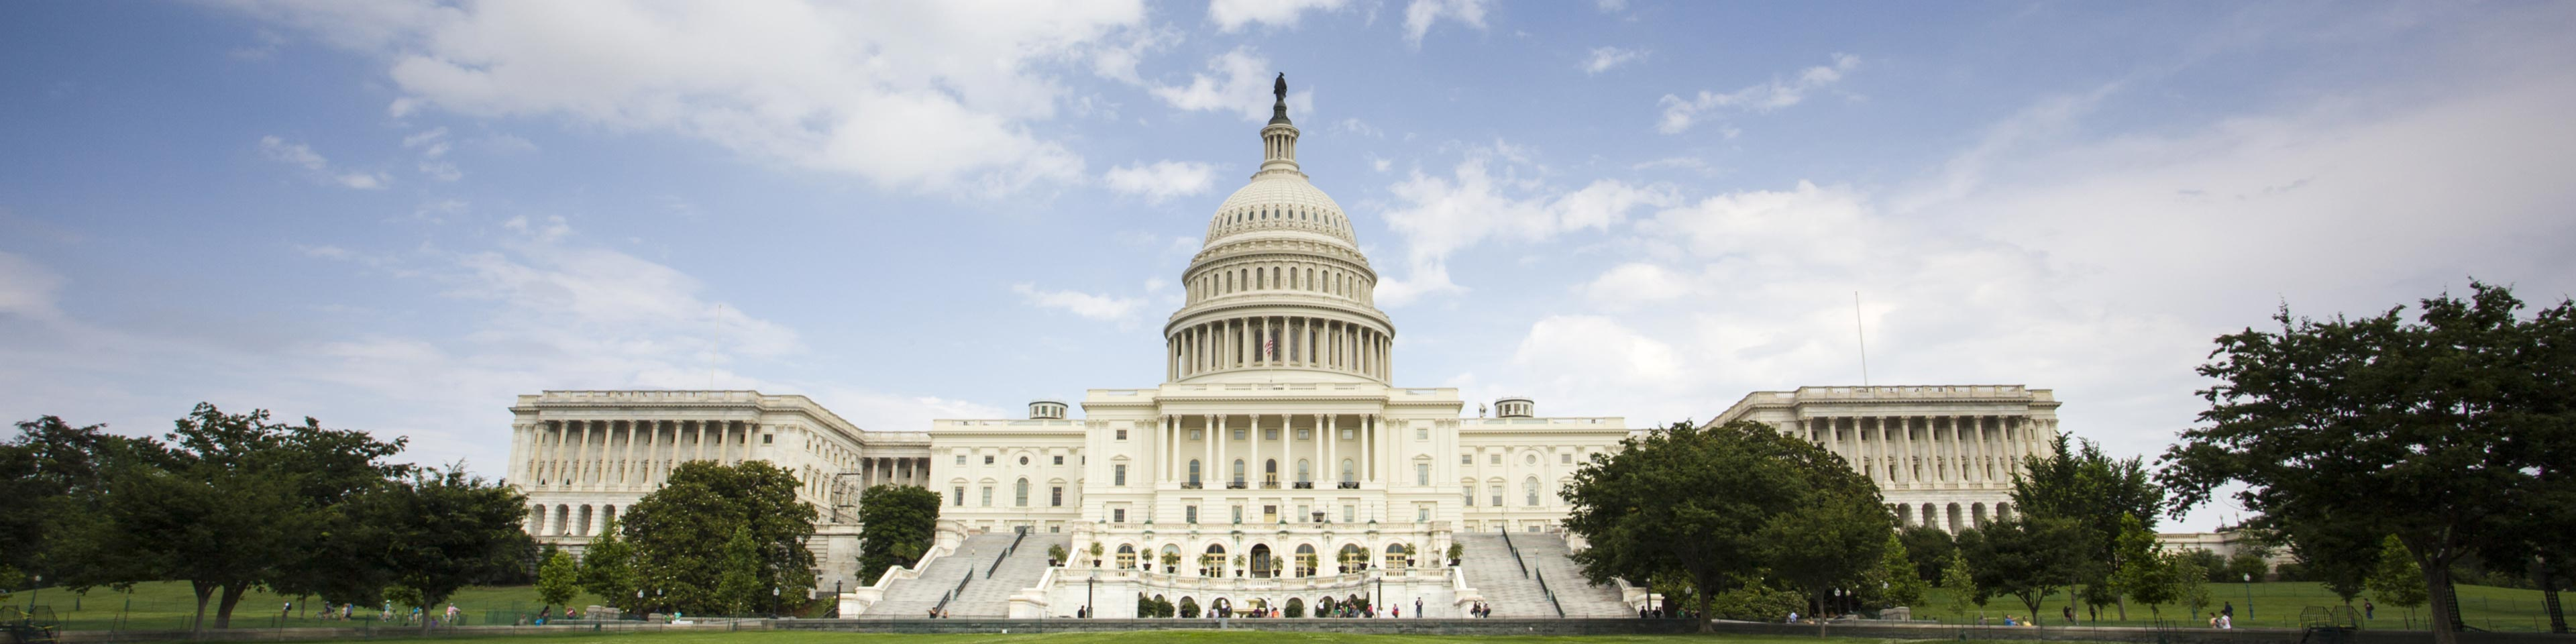 a photo of the U.S. Capitol Building in Washington D.C.